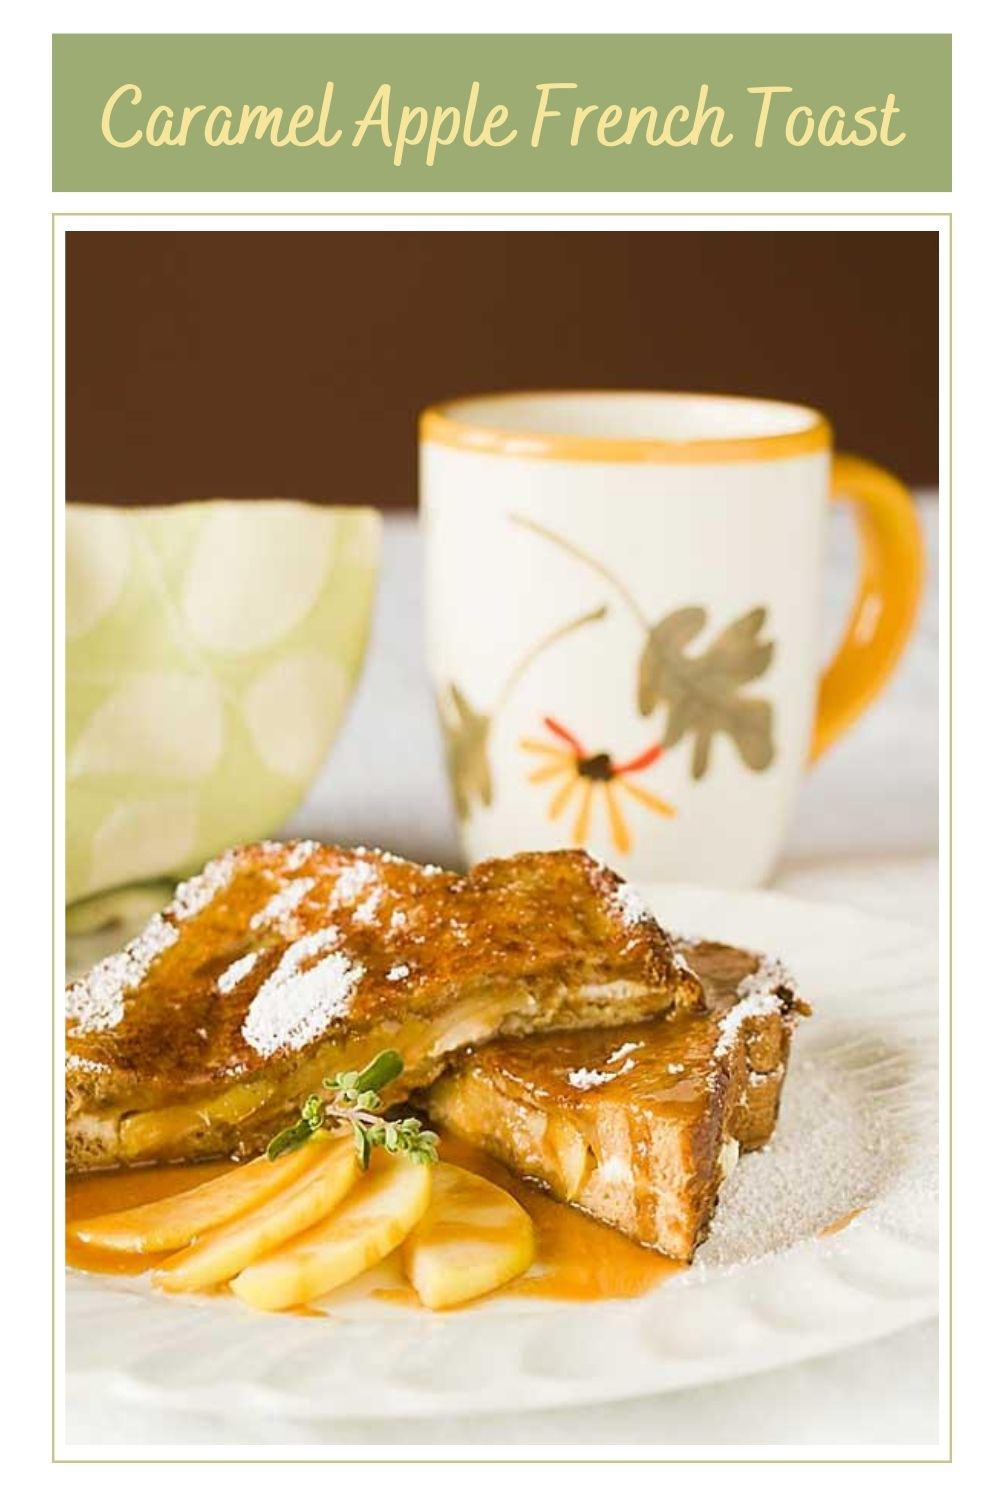 Creamy sweet and rich, caramel apple French toast will make you forget everything you didn't get done this summer. Embrace the beautiful fall!